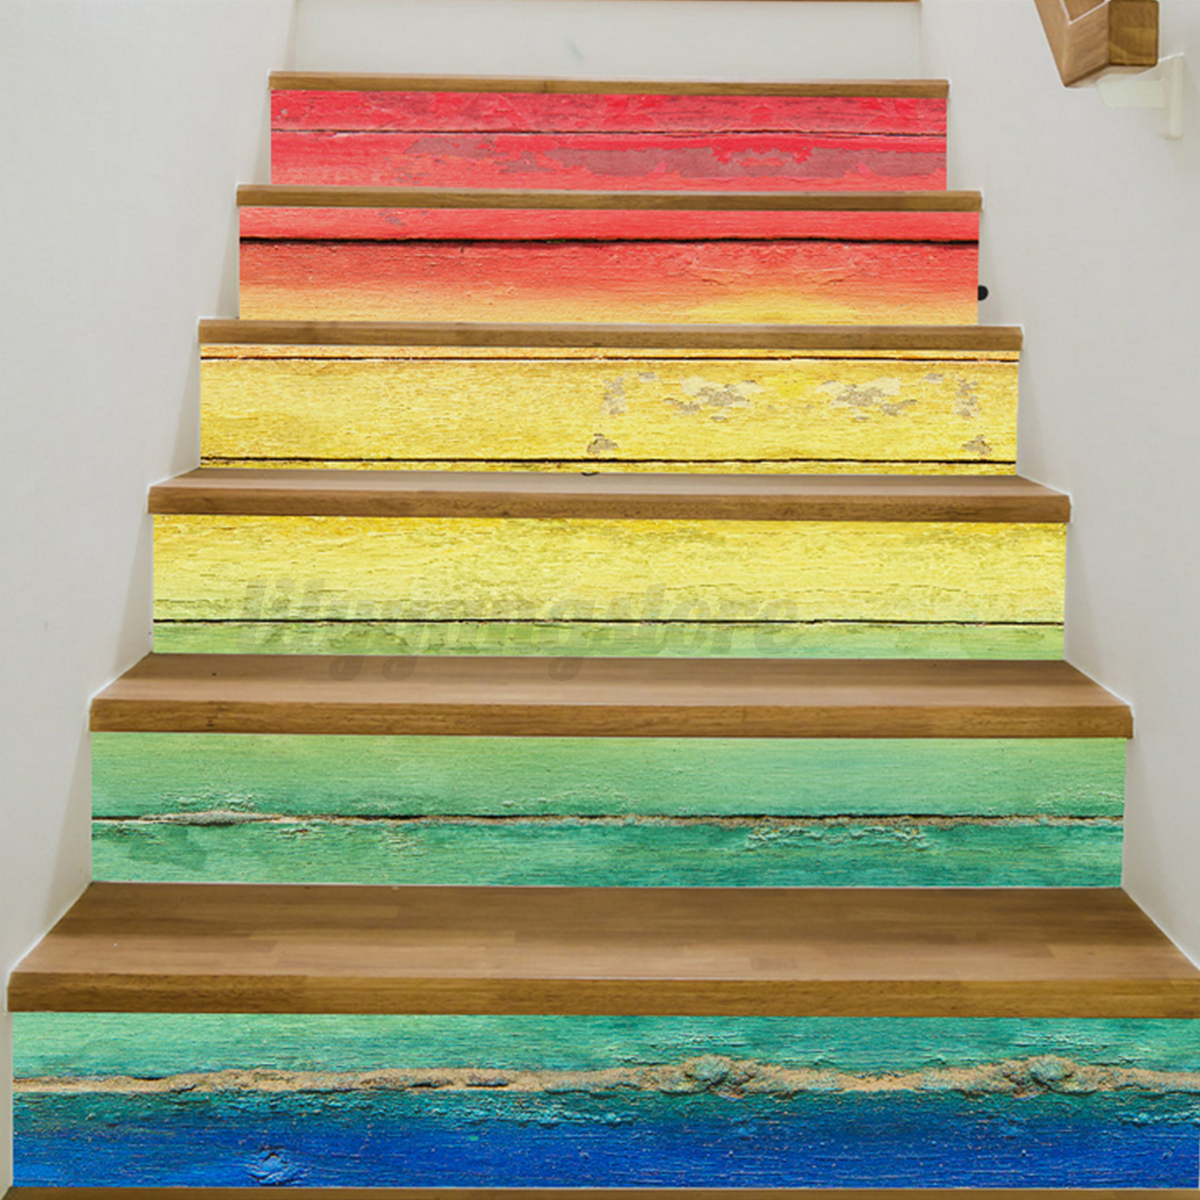 3D Stairs Tile Risers Mural Vinyl Decal Wallpaper Stickers Decor ...